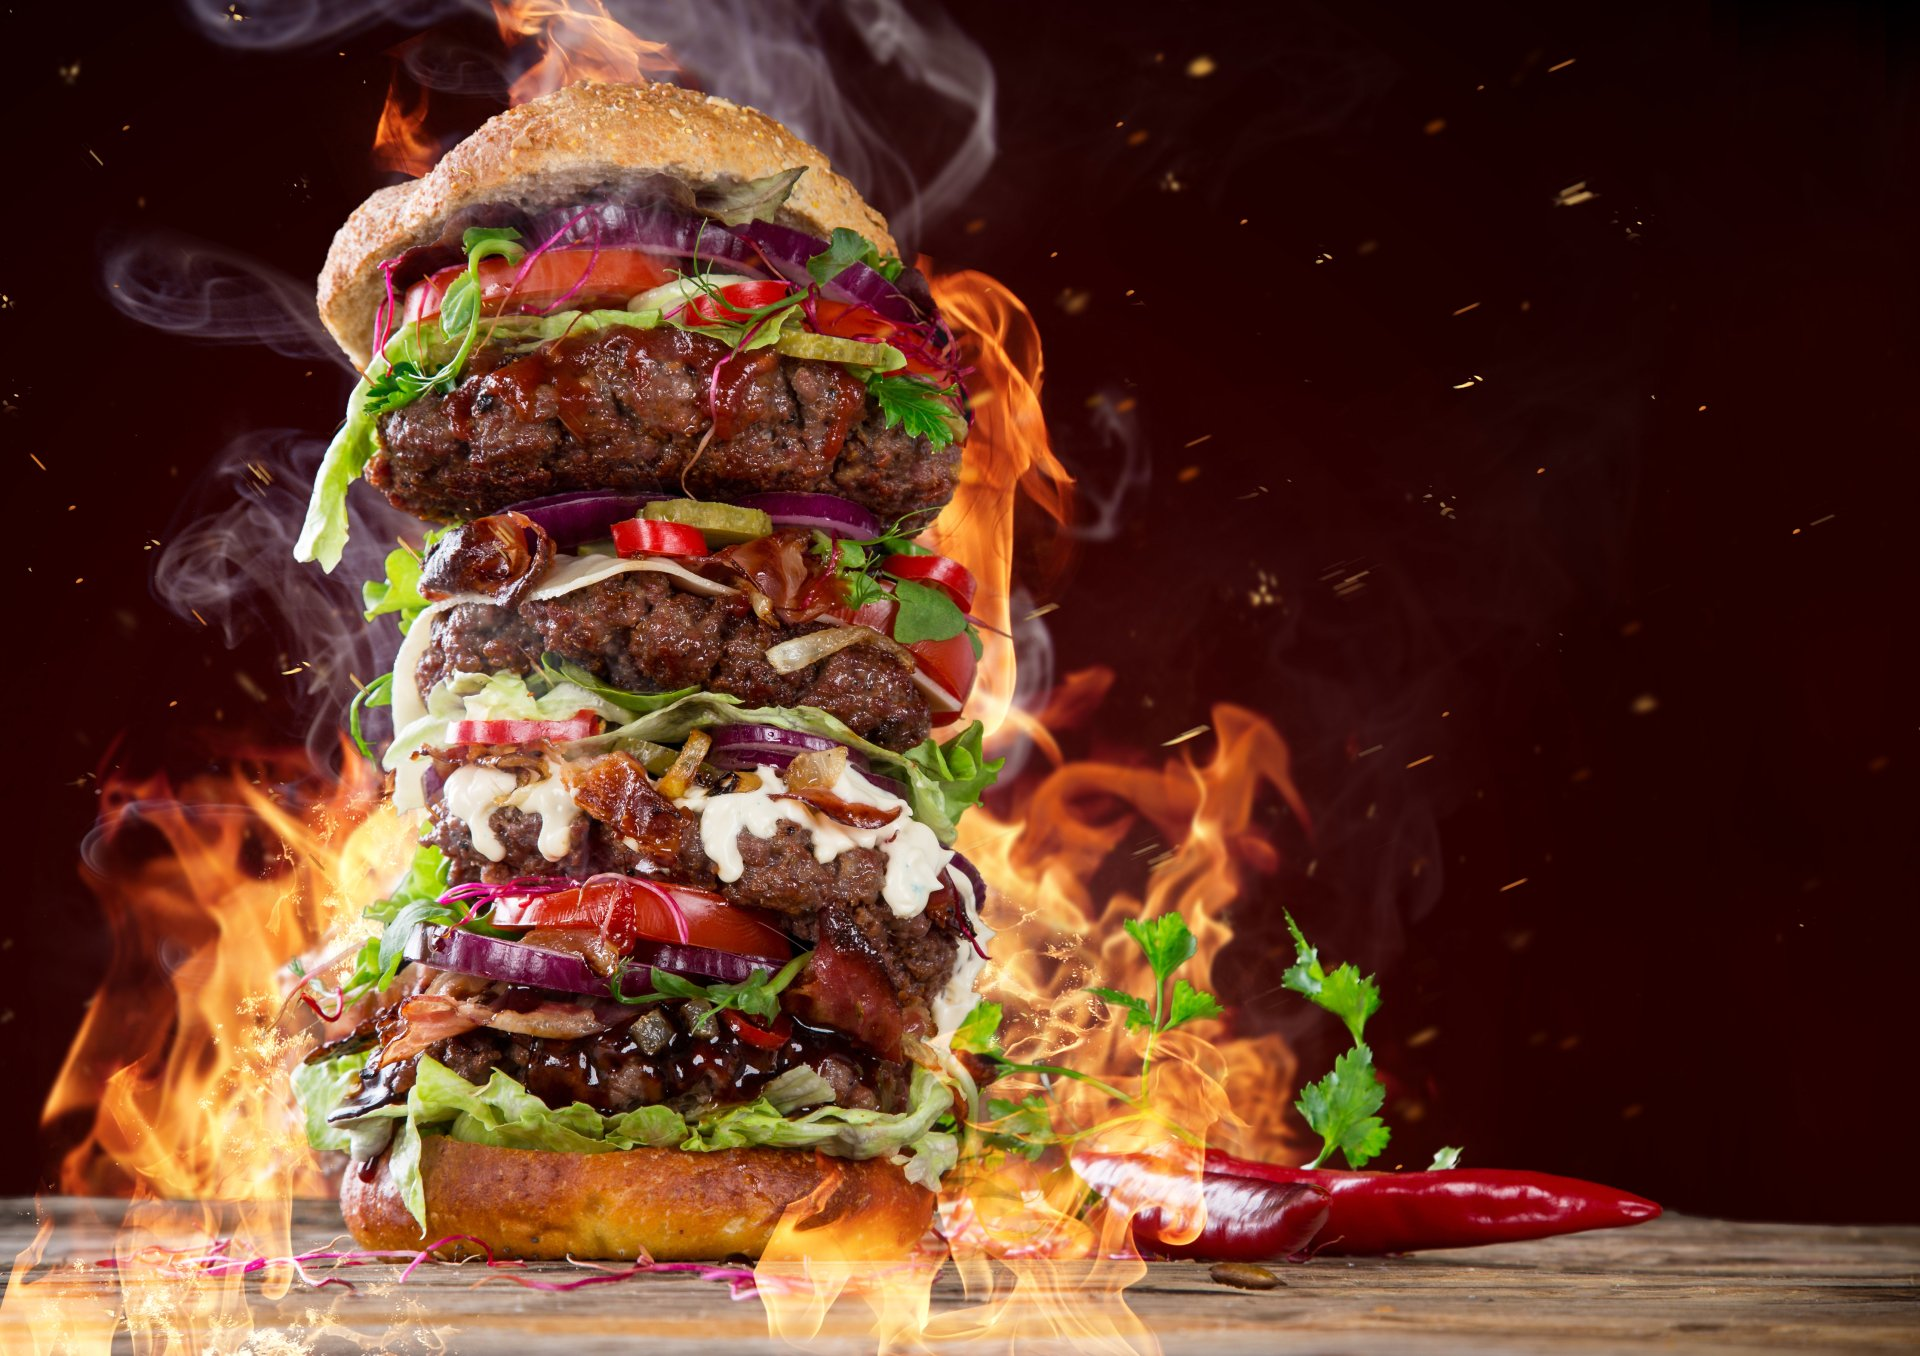 Food - Burger  Flame Wallpaper